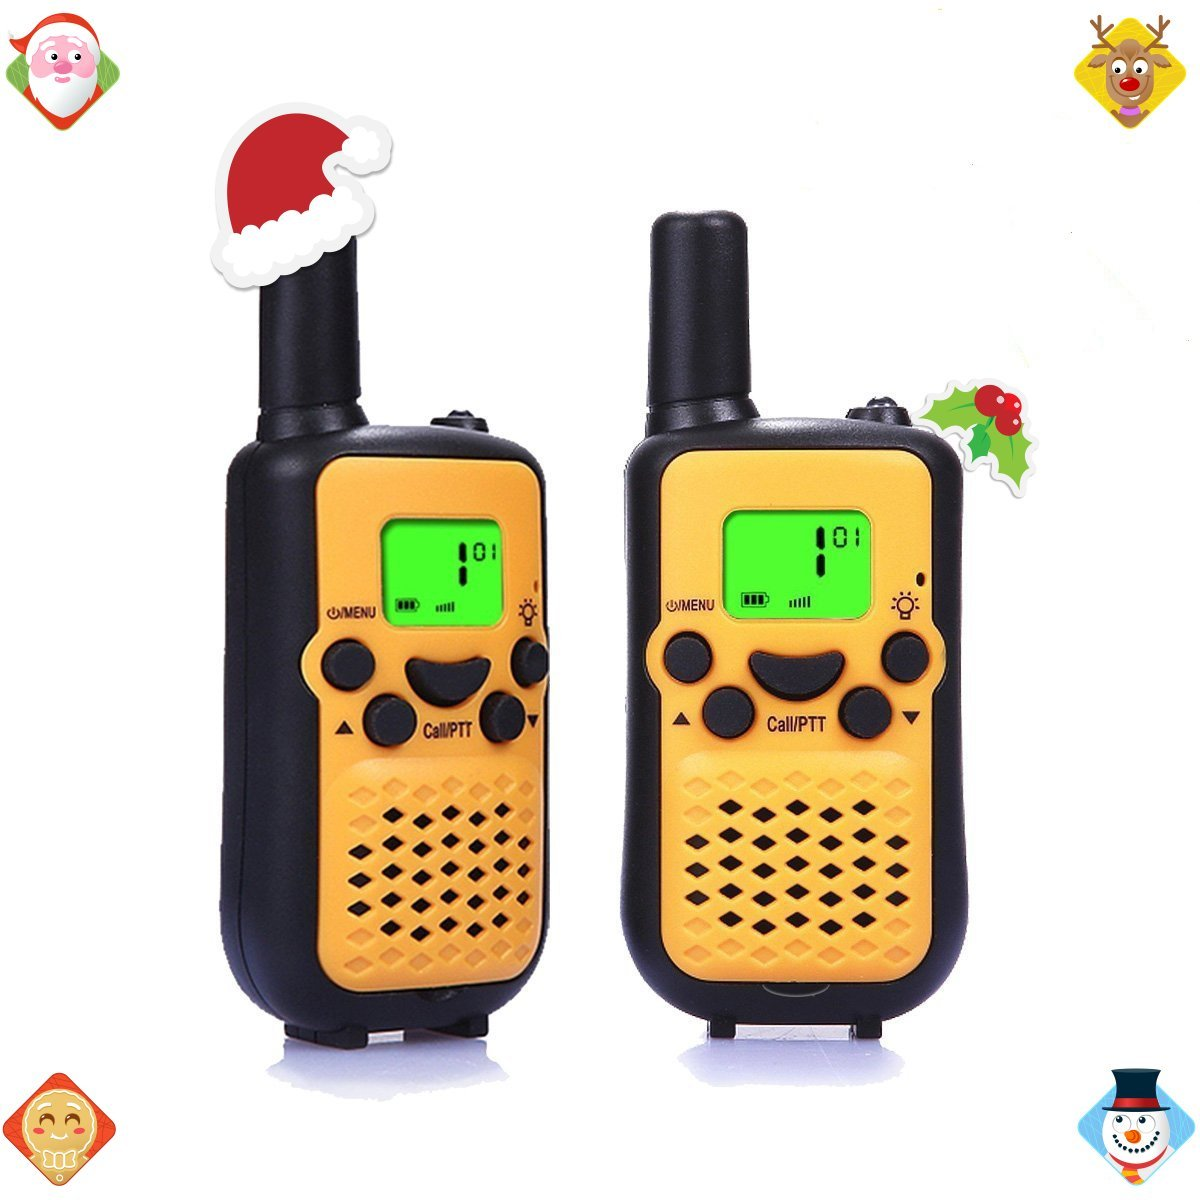 Walkie Talkies, Wireless Interphone 22 Channel FRS/GMRS 2 Way Radio 2 miles (up to 3 Miles) UHF Handheld Walkie Talkies for Kids,Business Outdoor Use (1 pair)(Yellow)